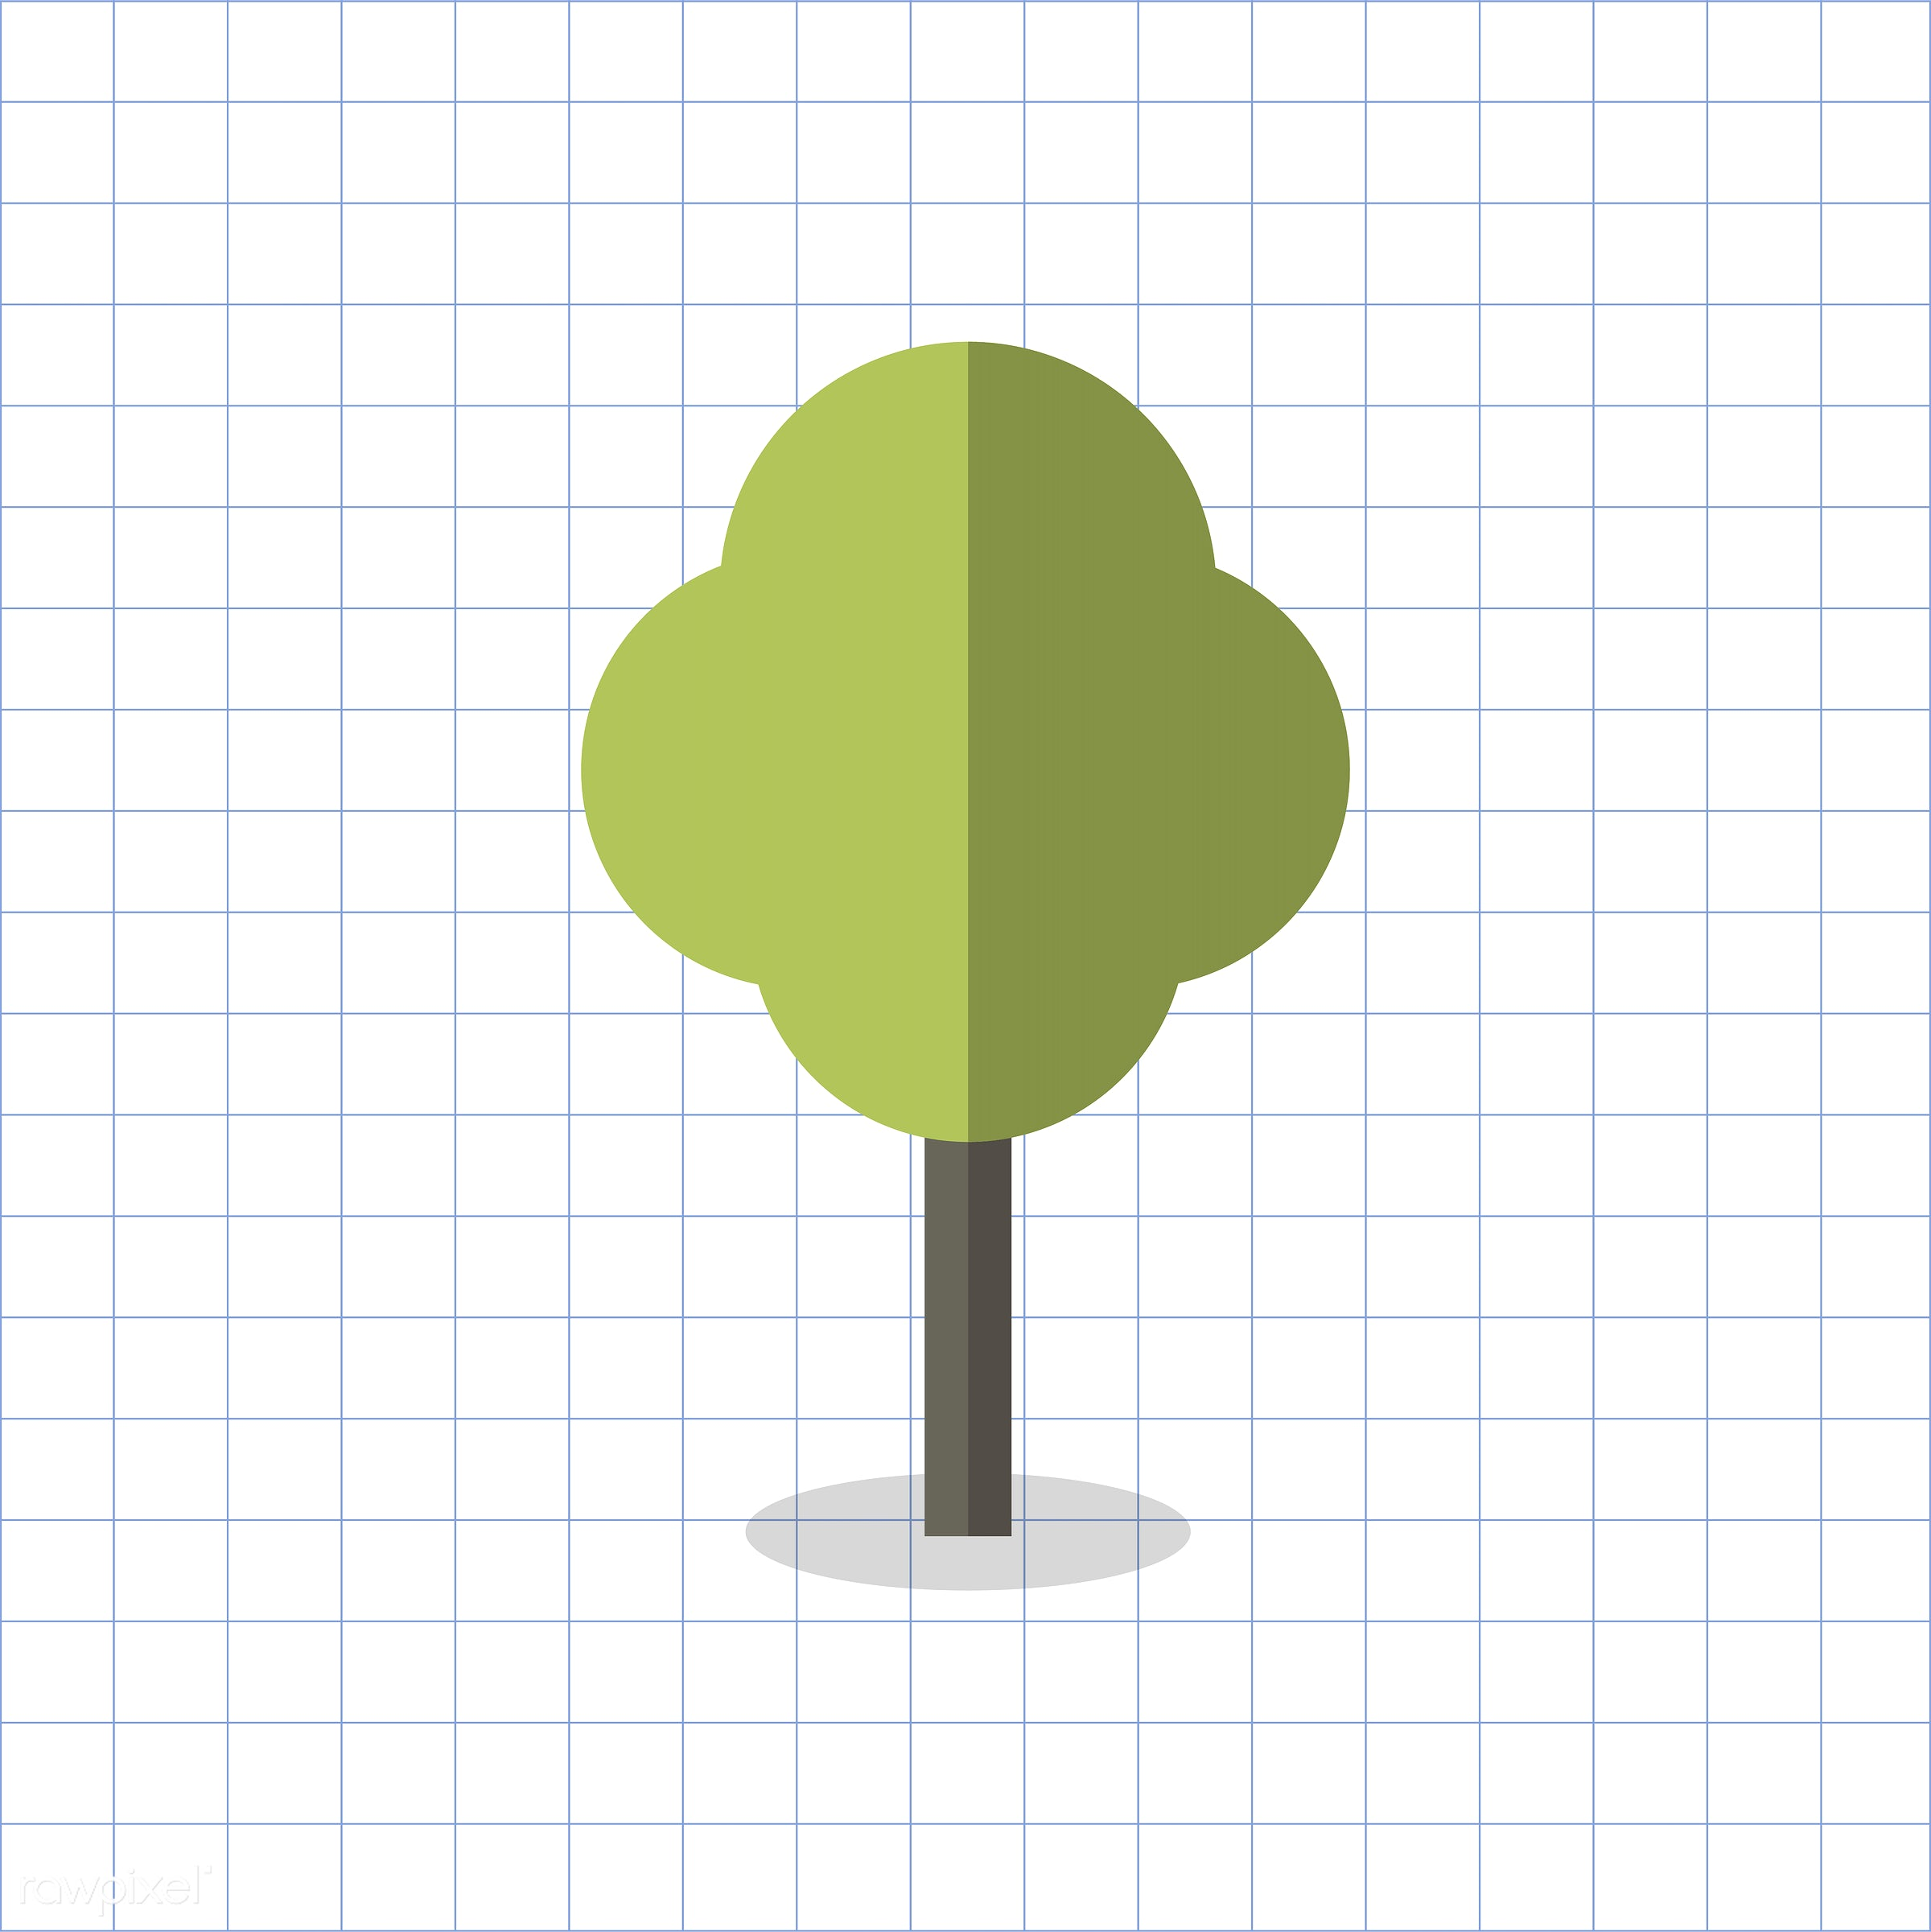 vector, graphic, illustration, icon, symbol, colorful, cute, plant, tree, nature